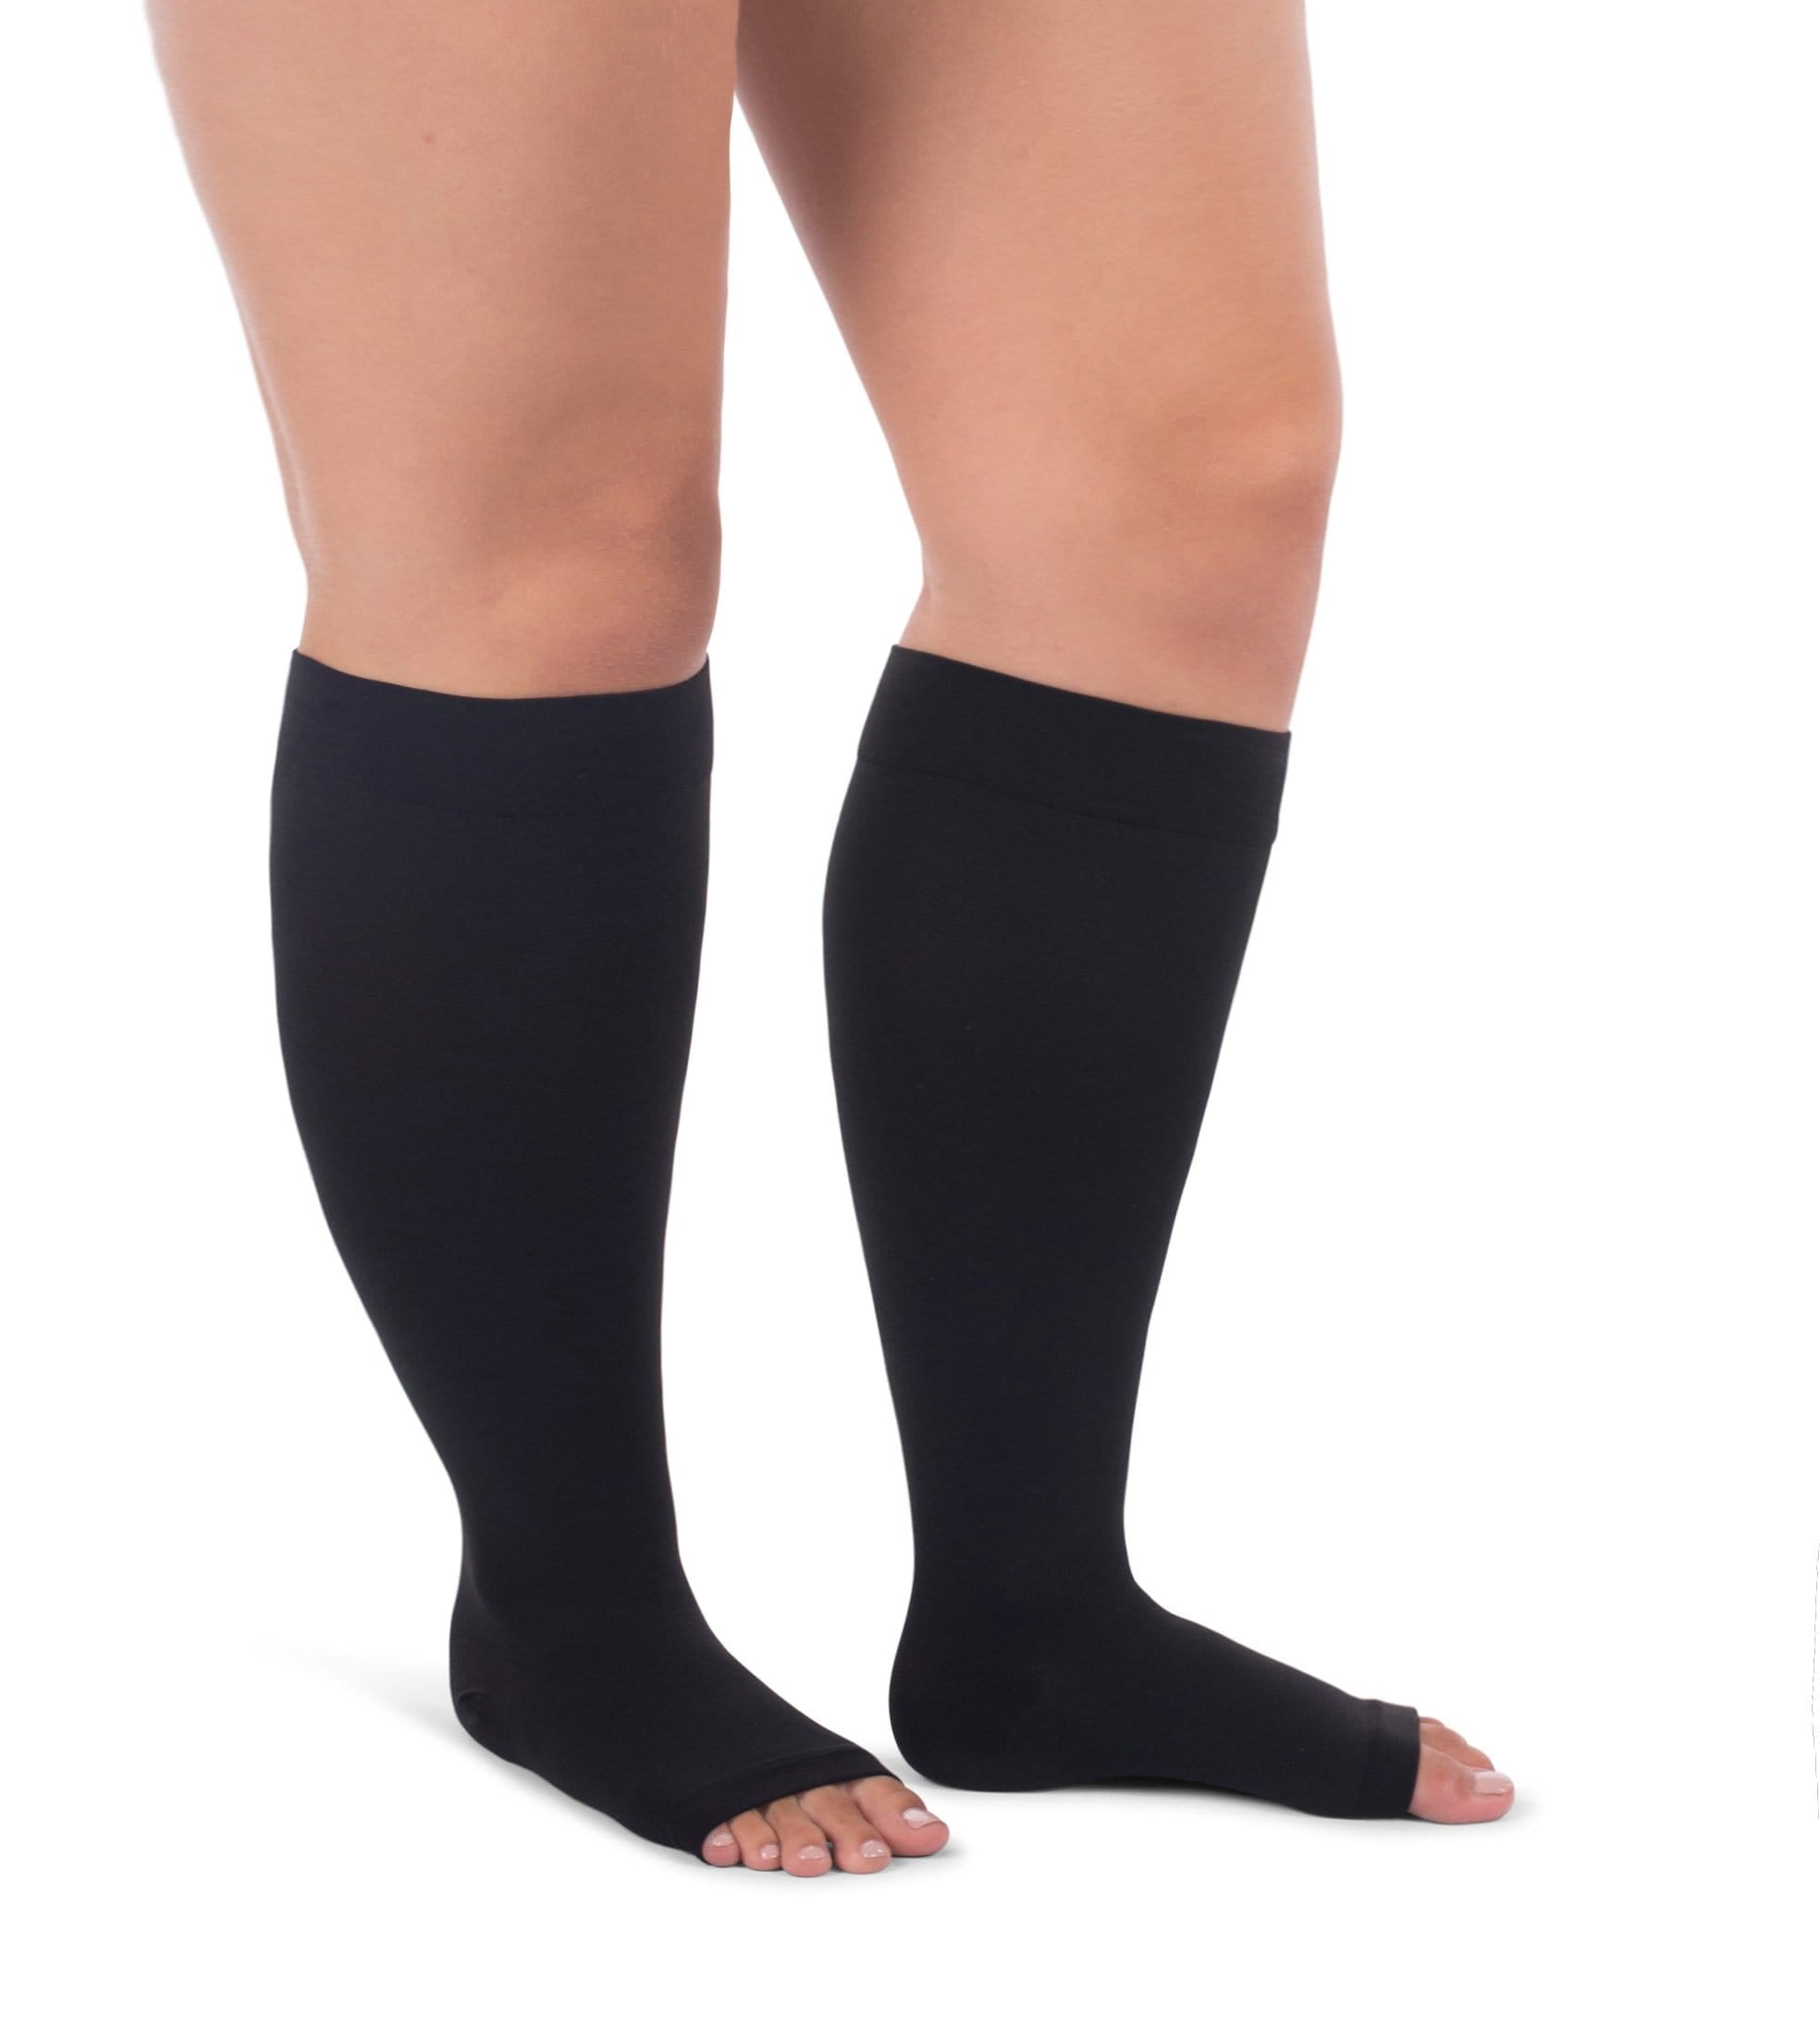 Knee High Compression Stockings, 20-30mmHg Surgical Weight Open Toe, Full Wide Calf Petite Short 223